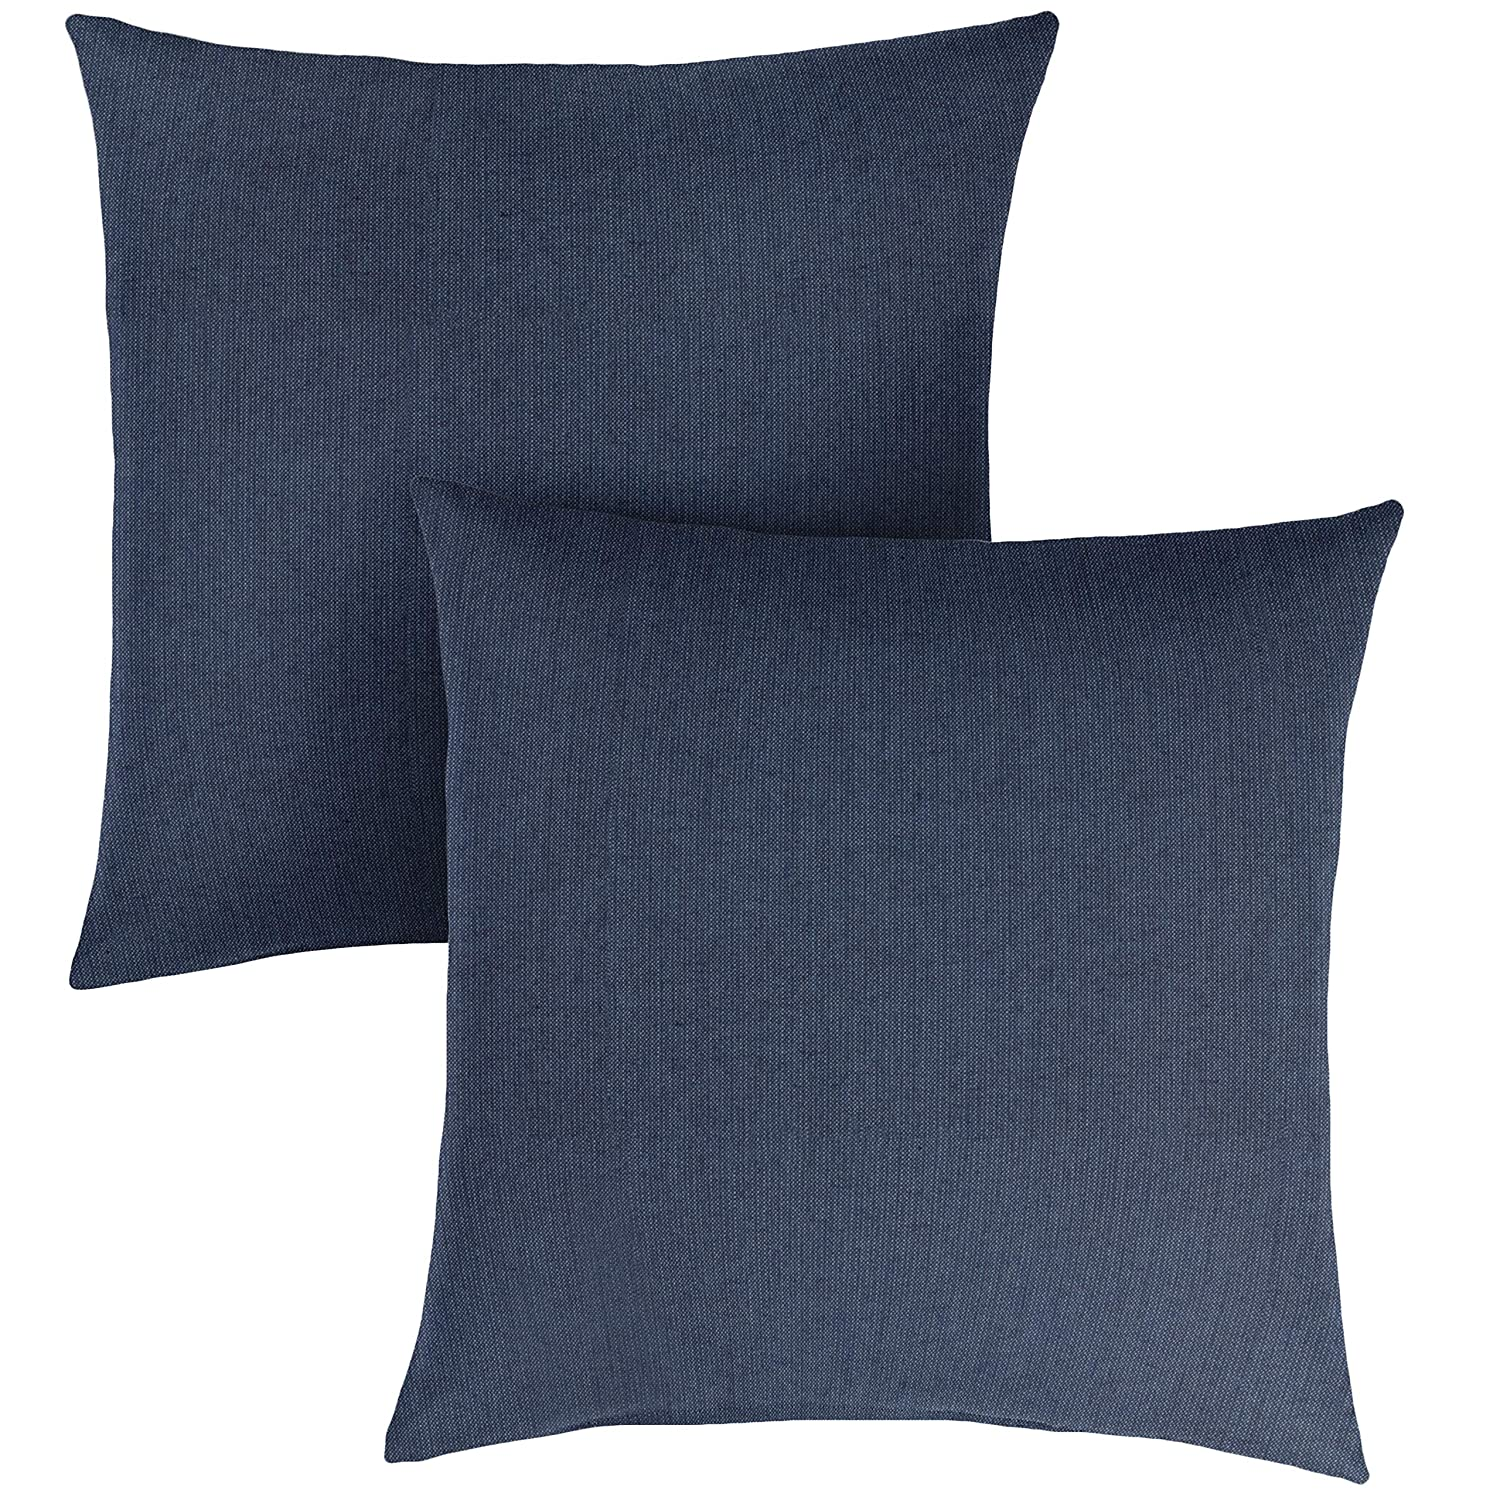 1101Design Sunbrella Spectrum Indigo Knife Edge Decorative Indoor Outdoor Square Throw Pillows, Perfect for Patio D cor – Indigo Blue 16 Set of 2